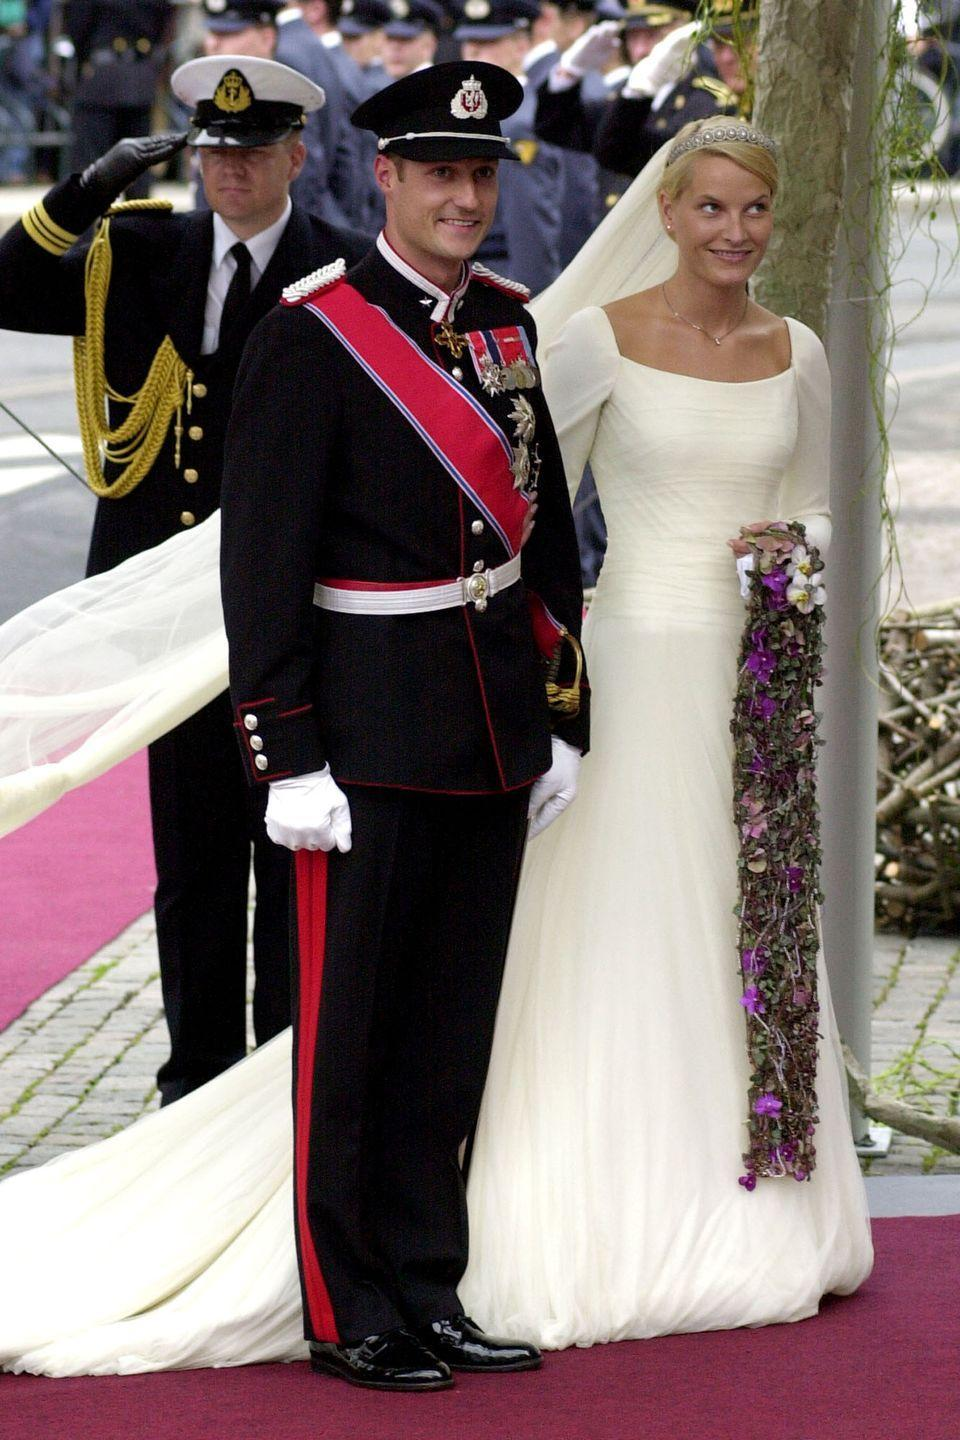 <p>Princess Mette-Marit married Norwegian Crown Prince Haakon on August 25, 2001 in Oslo, Norway at Oslo Cathedral. She wore a custom-dyed ecru silk crêpe with a 6-foot train and a nearly 20-foot veil.</p>